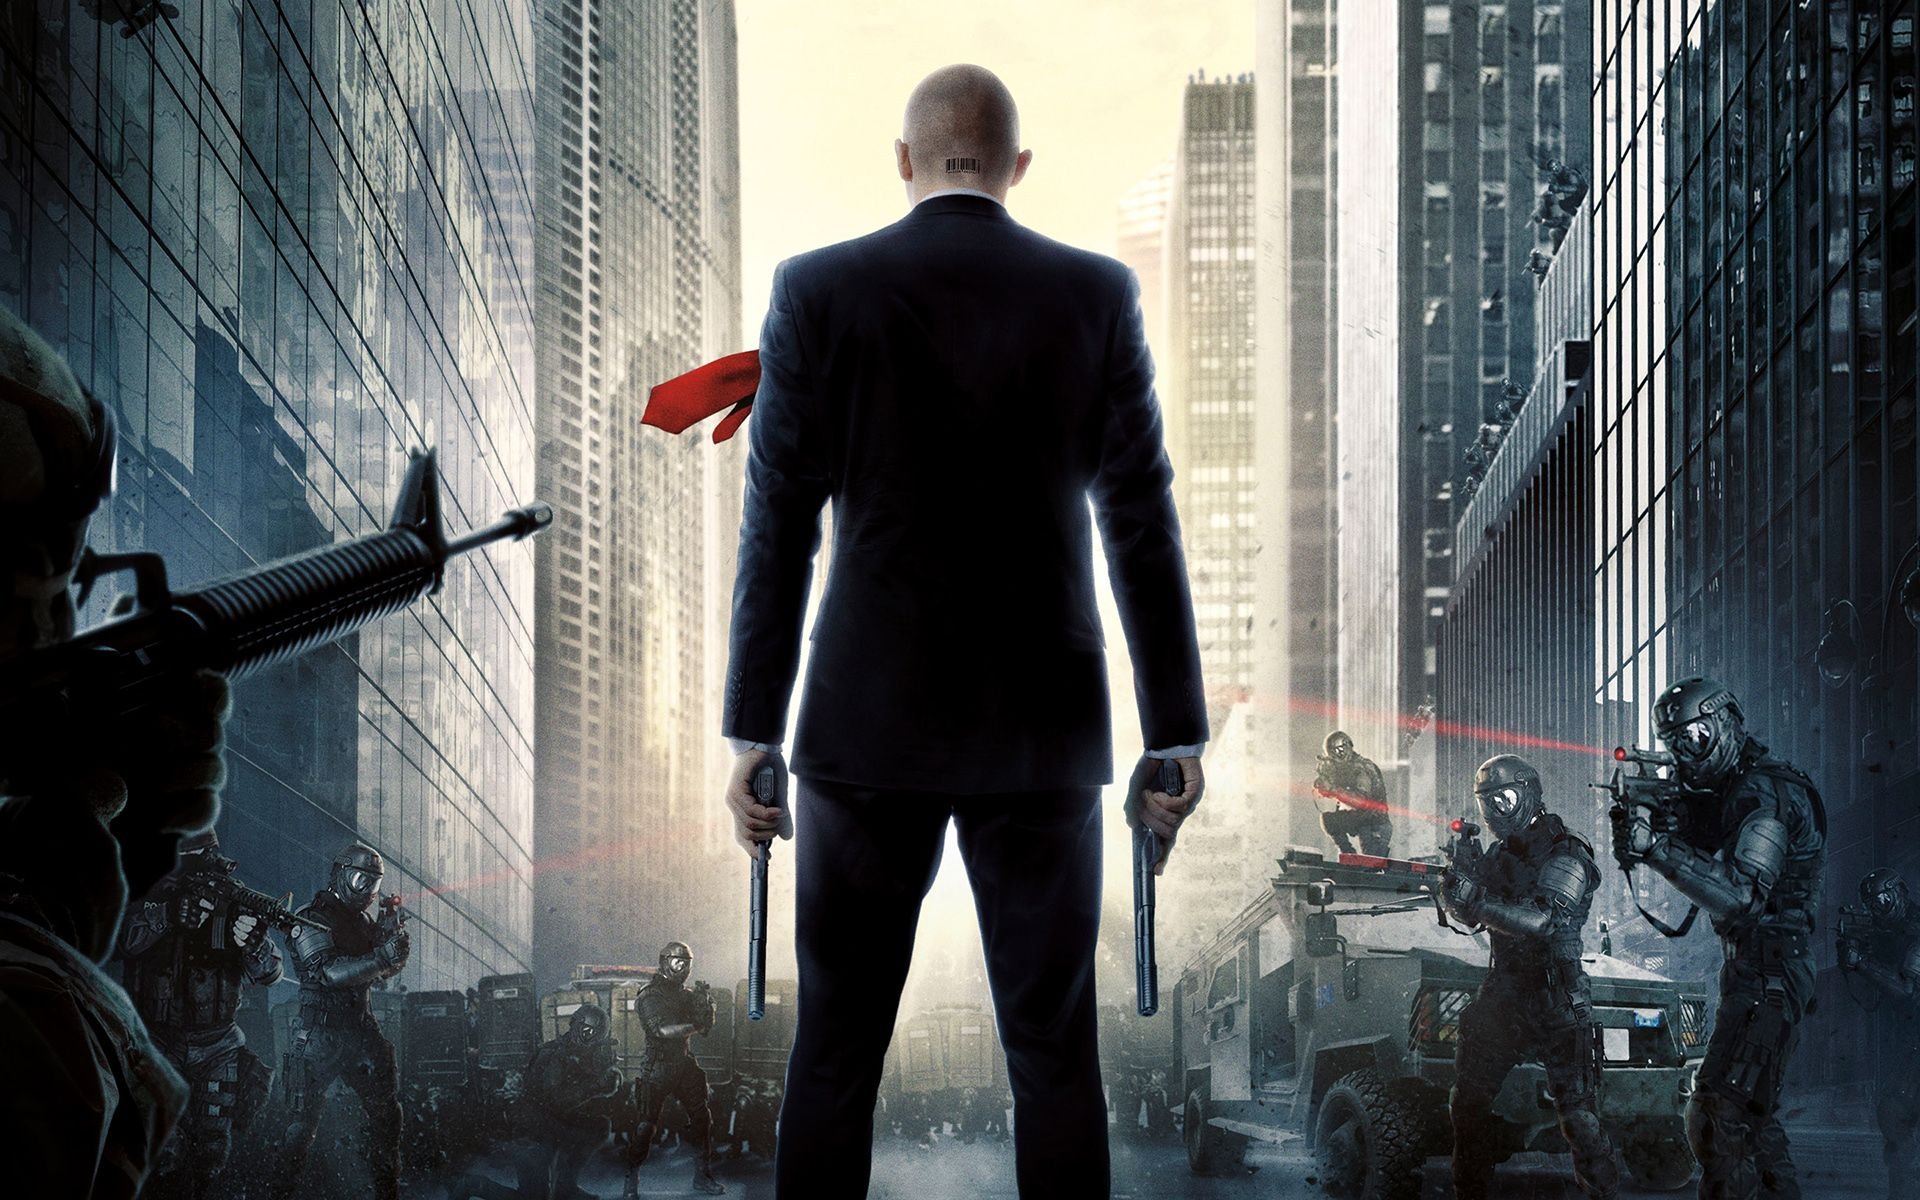 2015 Hitman Agent 47 Wallpapers : Find best latest 2015 Hitman Agent 47 Wallpapers in HD for your PC desktop background & mobile phones.